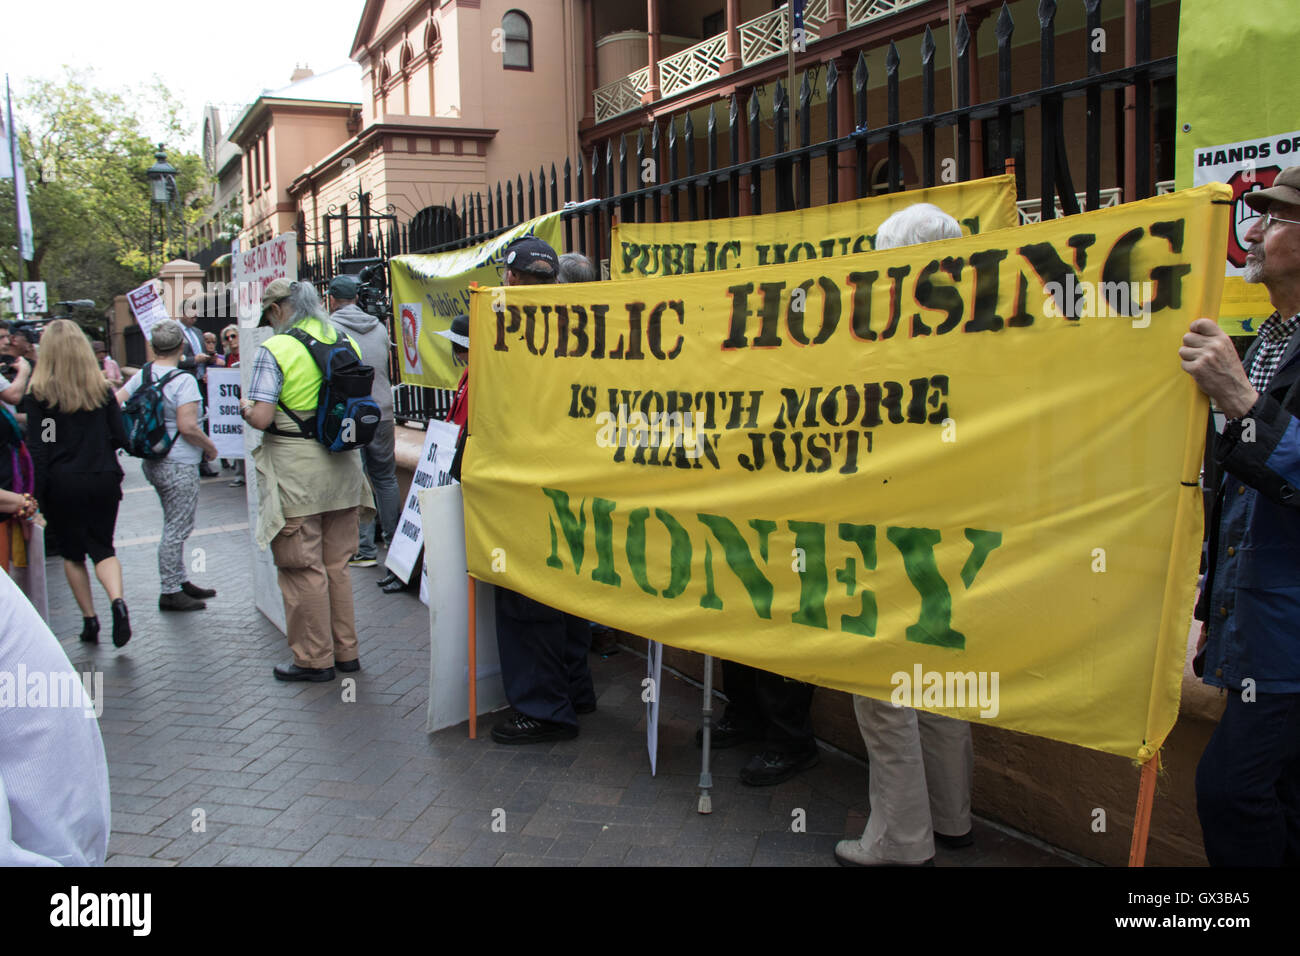 Sydney, Australia. 14 September 2016. Action for Public Housing organised a rally in support of public housing and Stock Photo